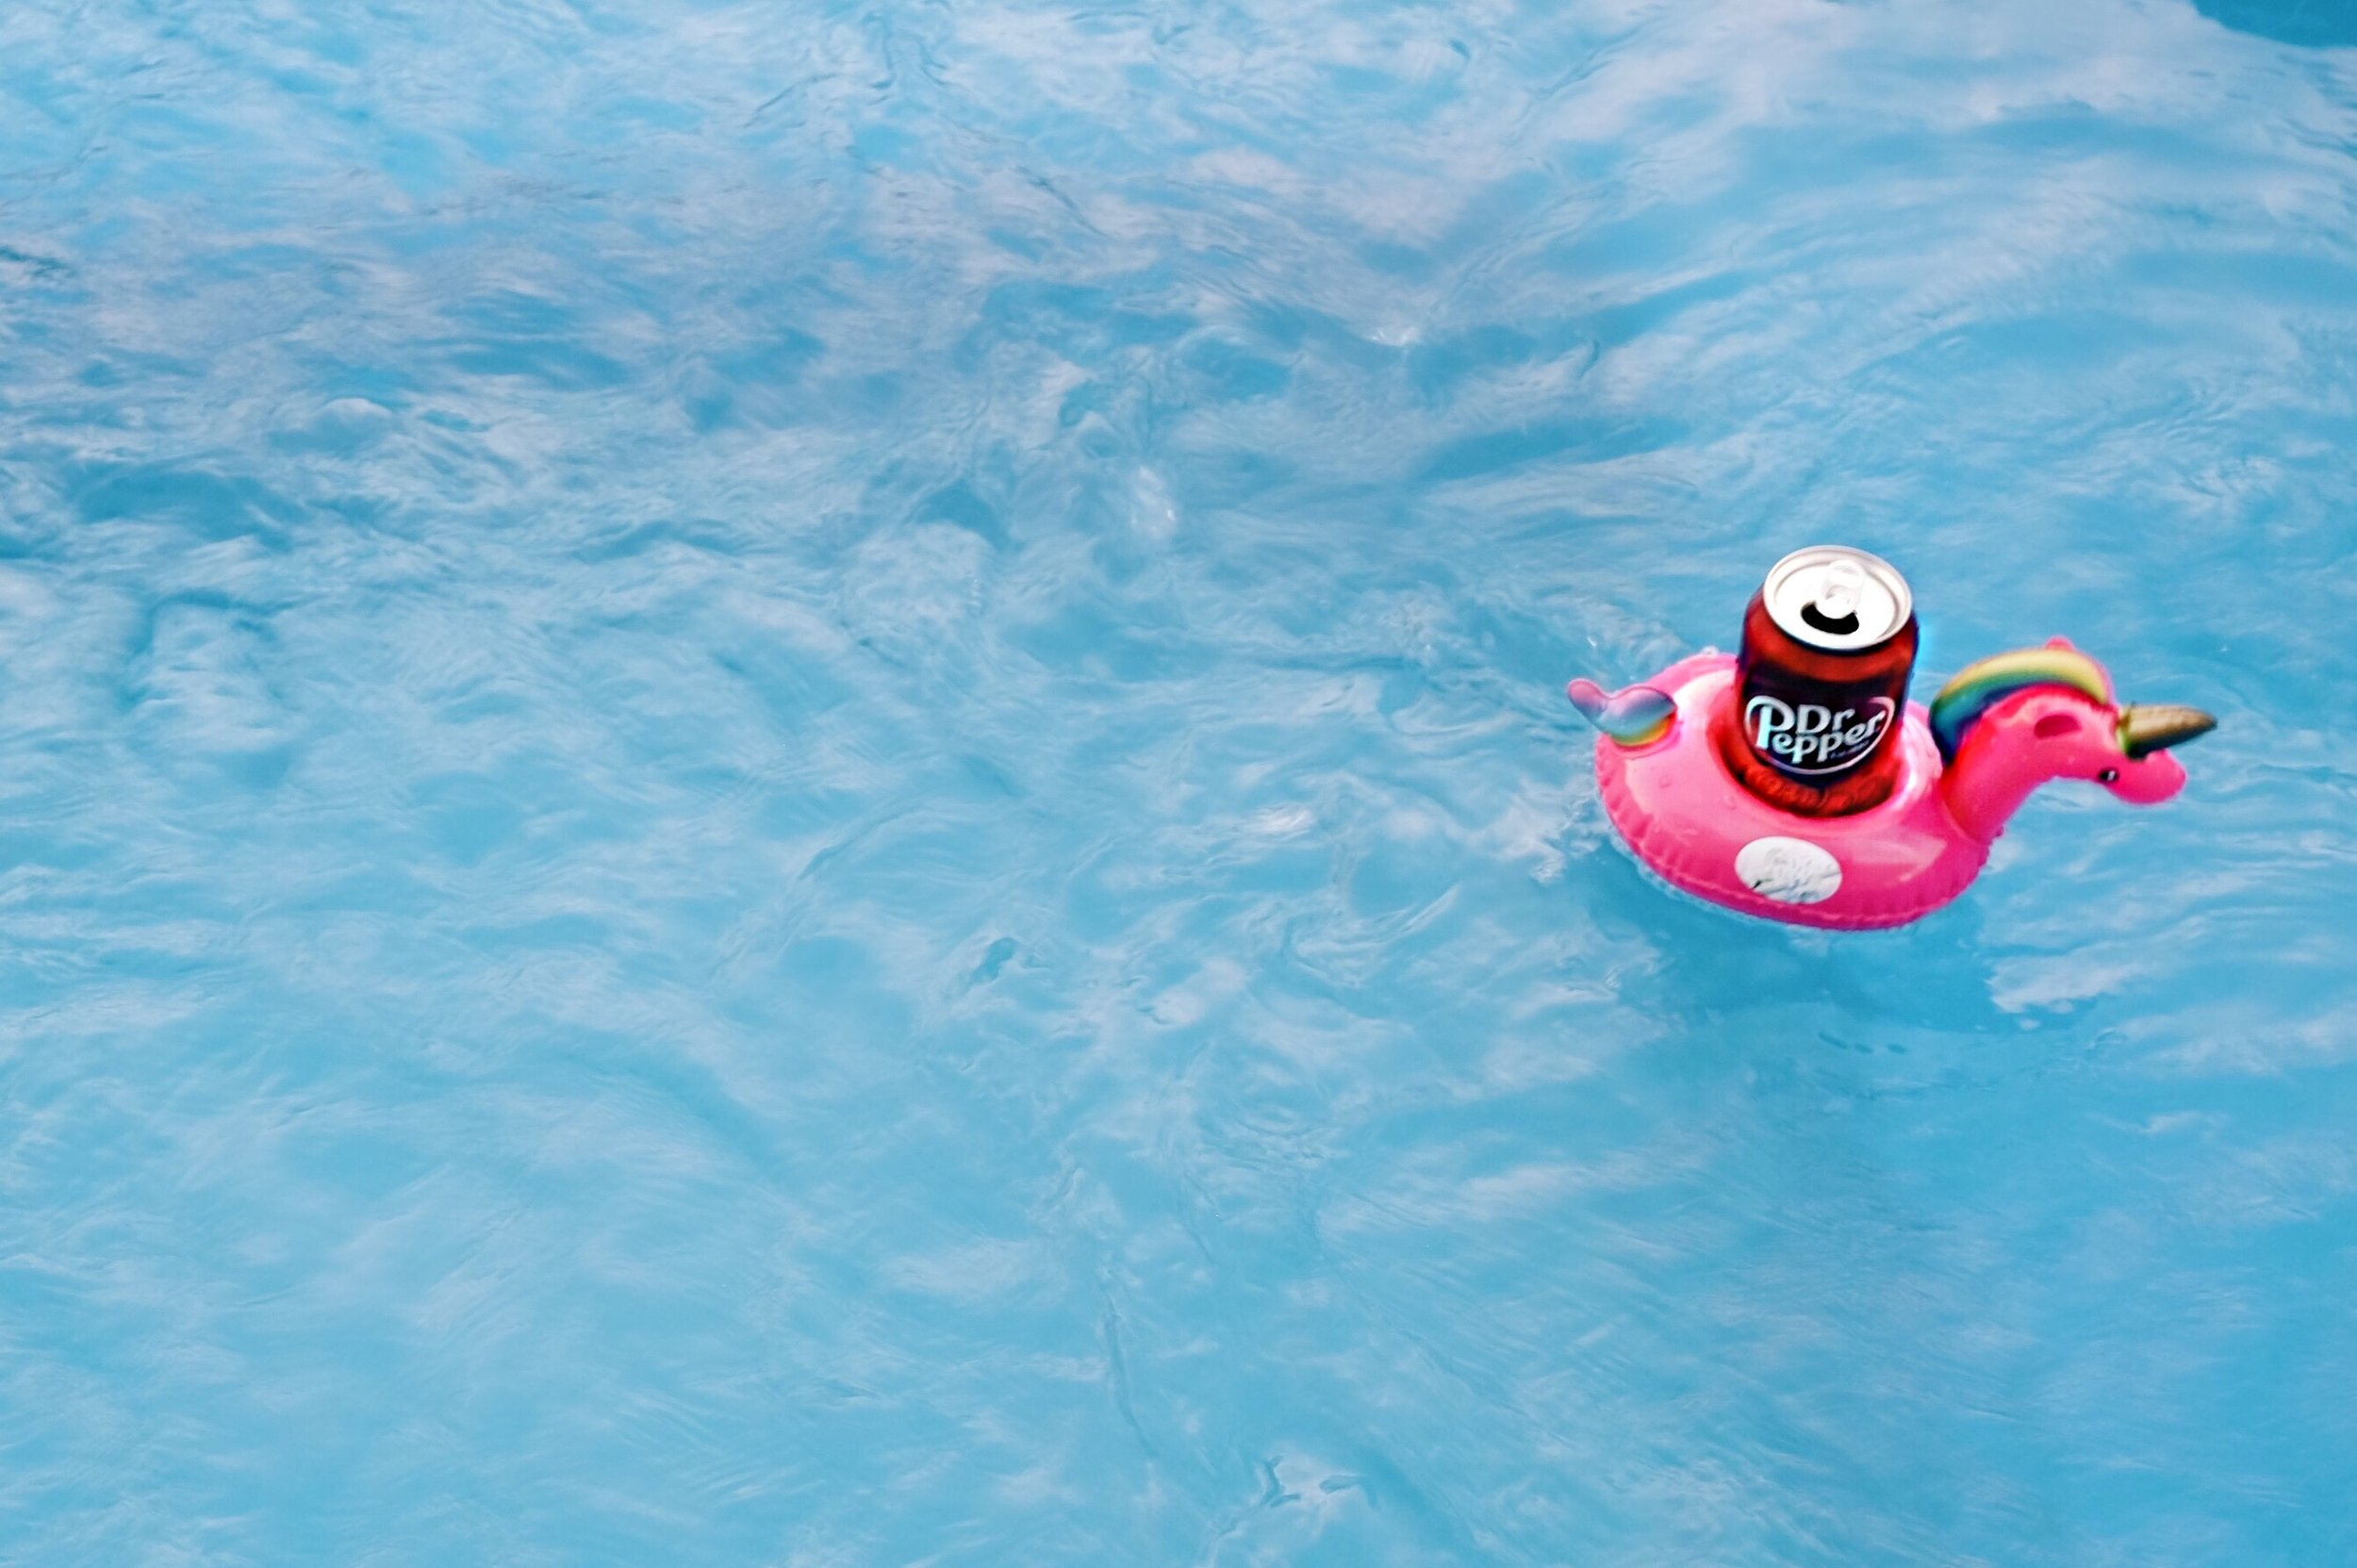 Summer Fun Bucket List With Dr. Pepper via chelceytate.com #pickyourpepper #walmart #ad